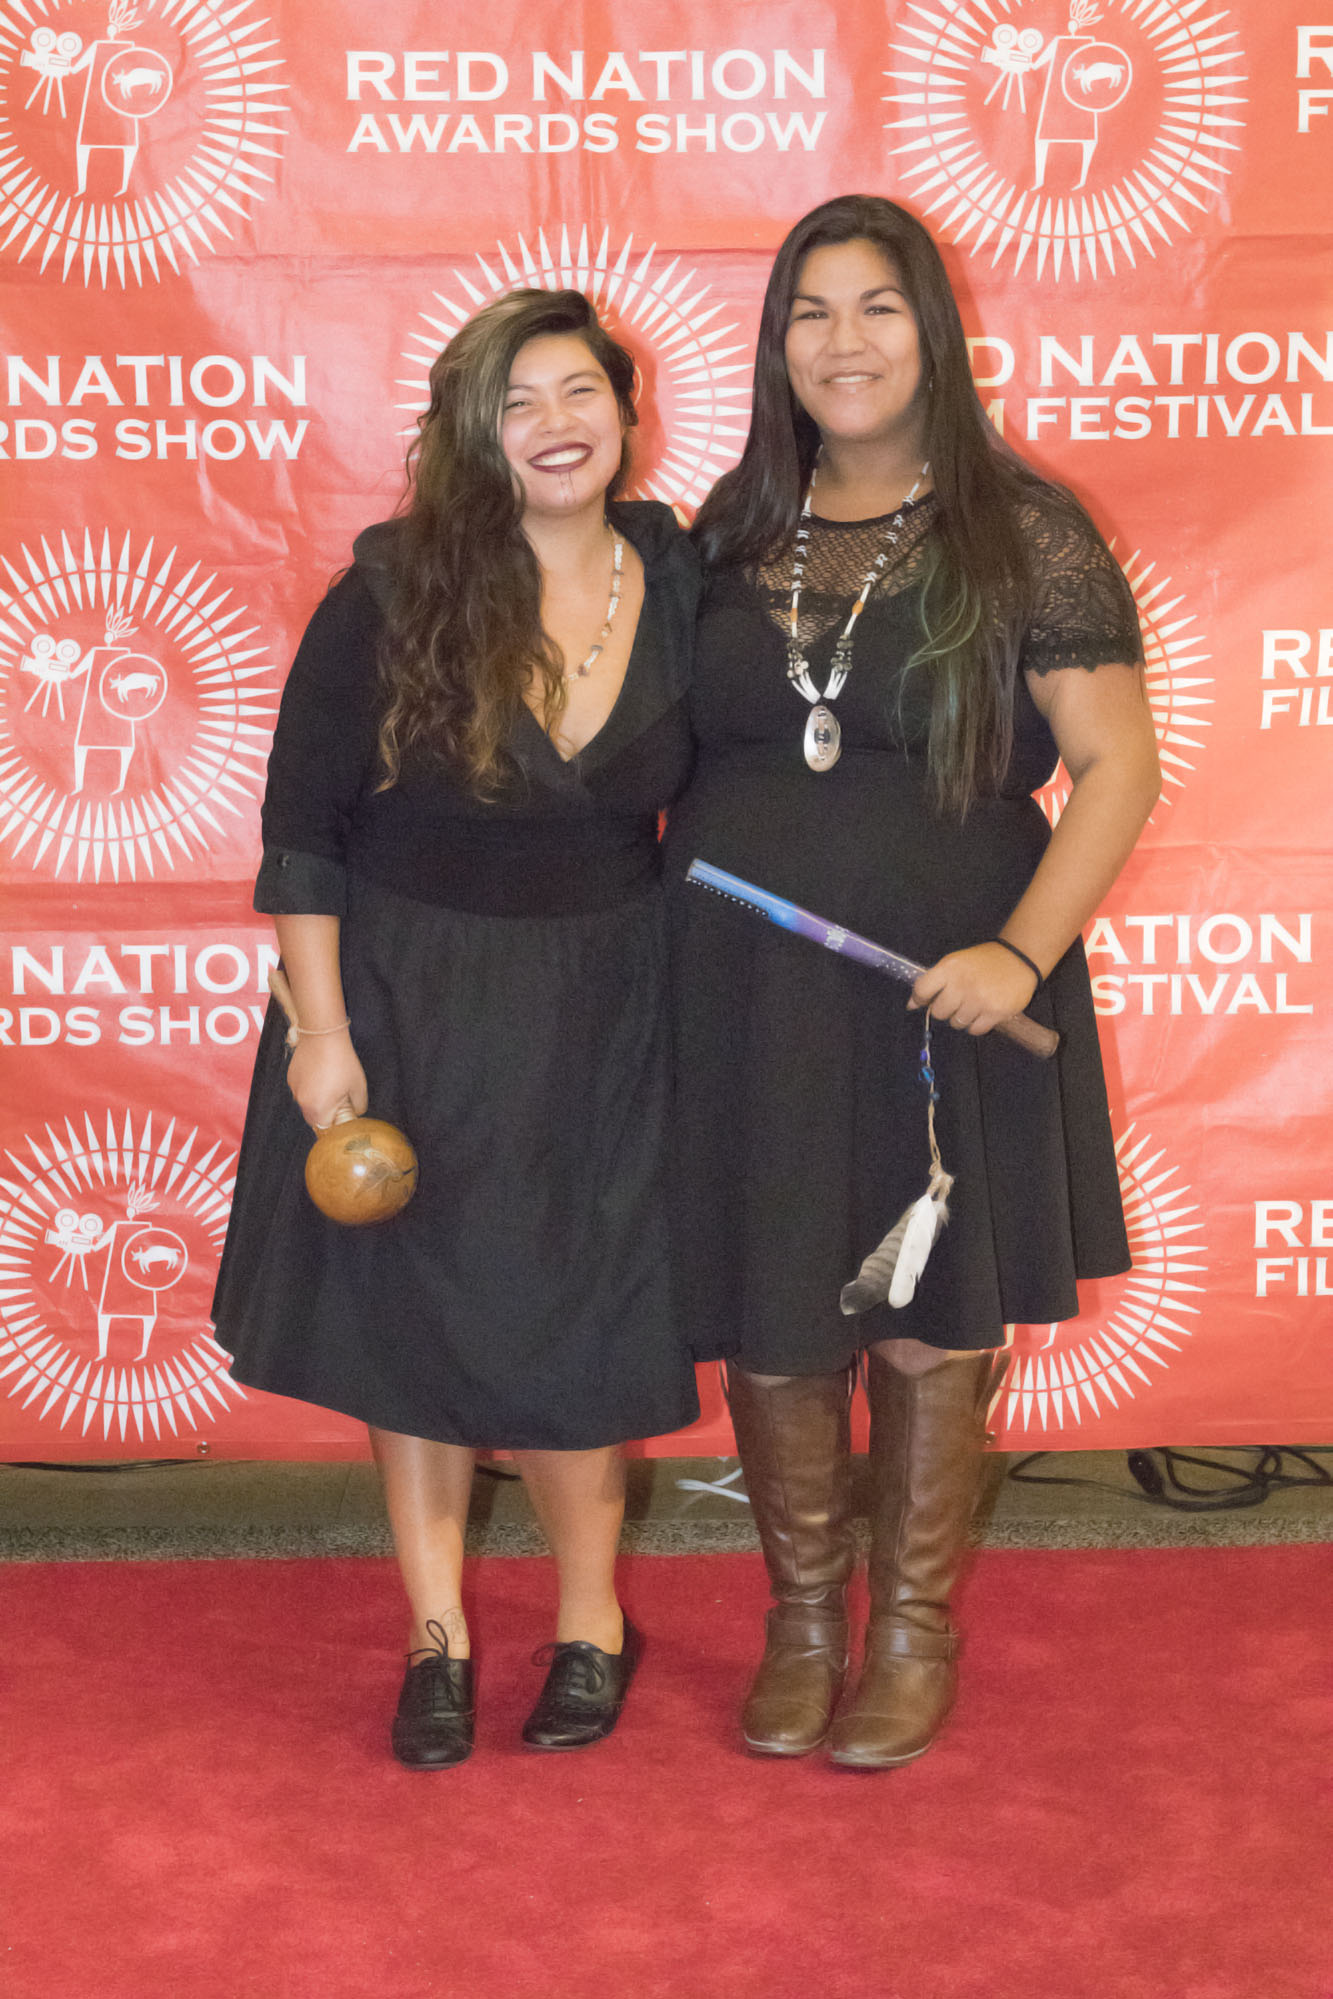 Red Nation Film Festival 2017 Photographer: Jesse Watrous Photography and Media